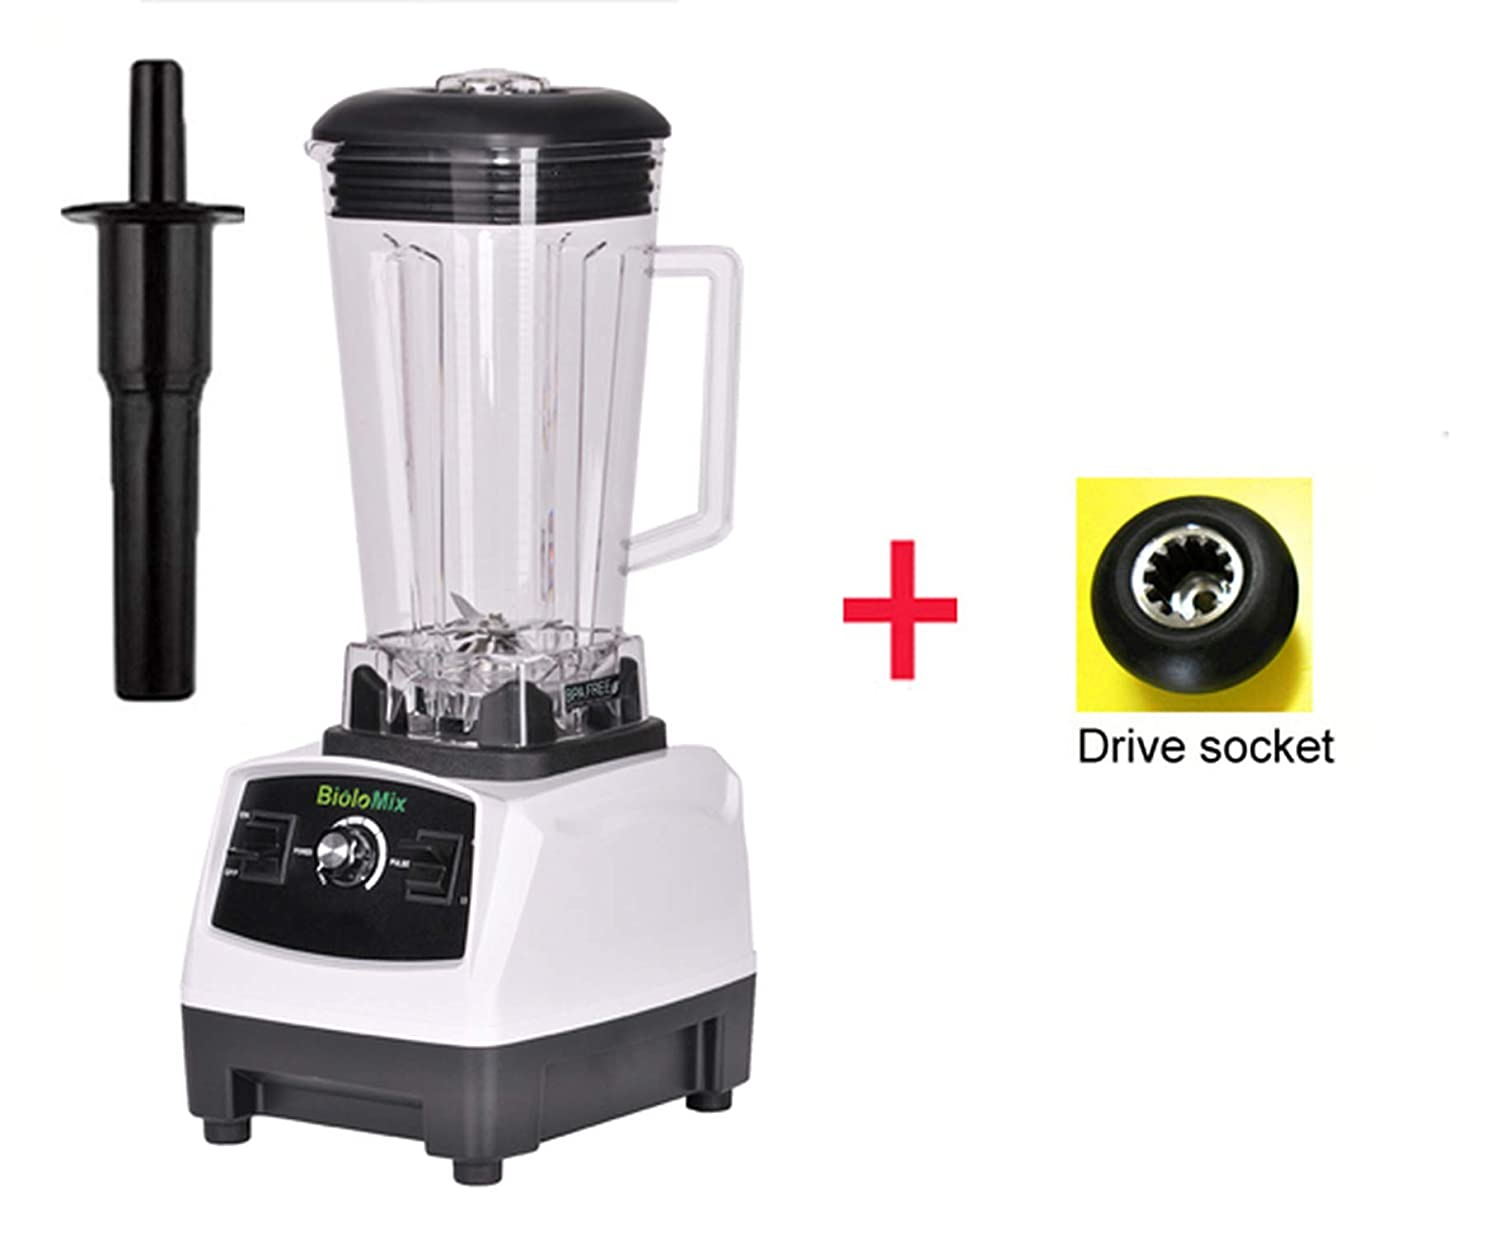 2200W 3Hp 2L G5200 High Power Ial Home Professional Smoothies Power Blender Food Mixer Juicer Fruit Processor,White Extra Driver,Uk Plug